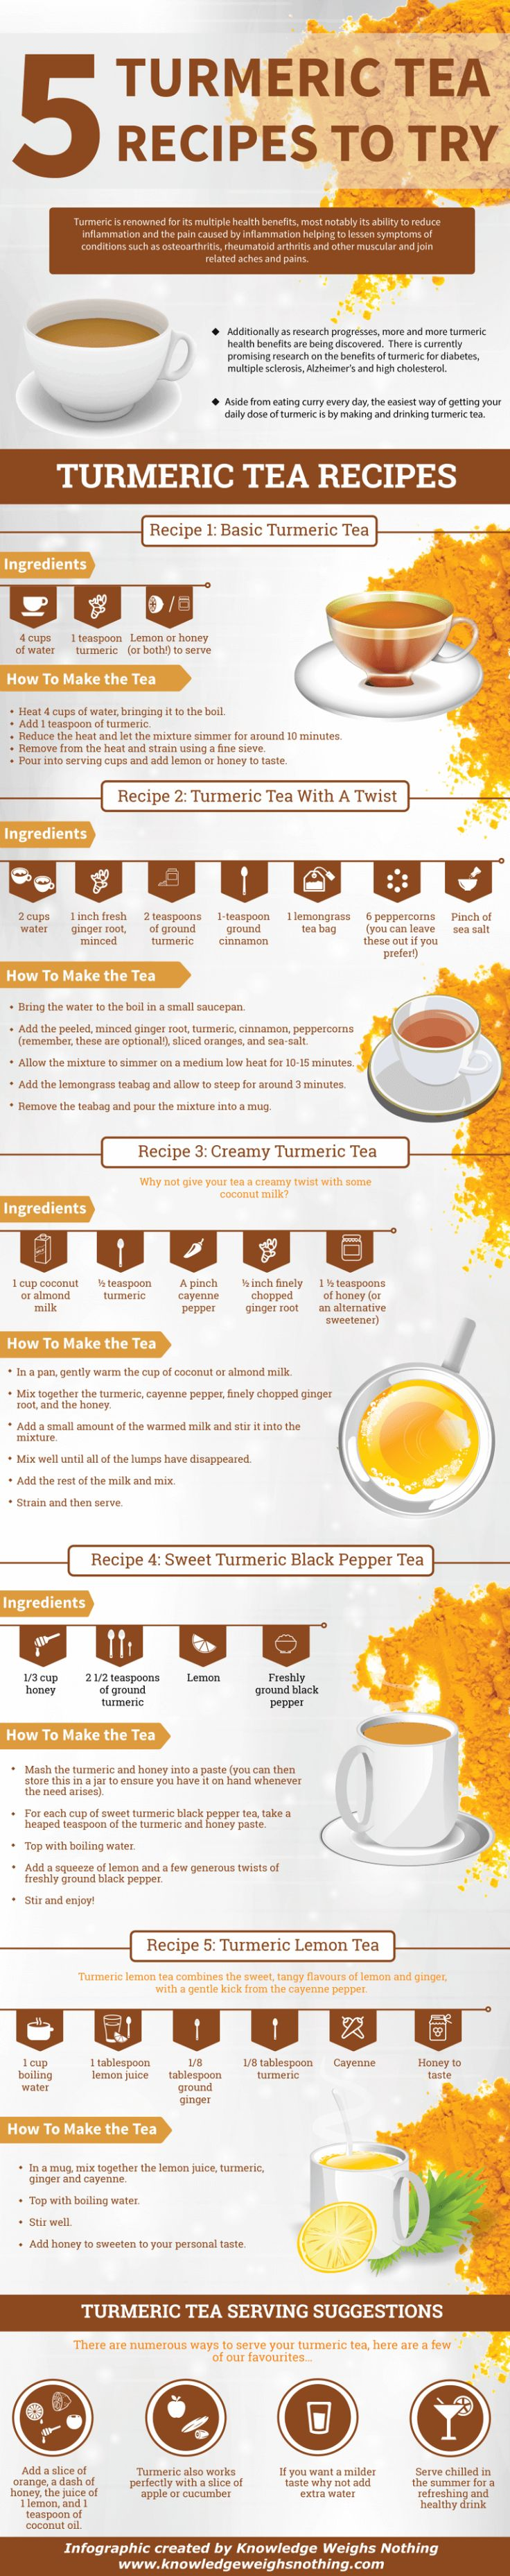 How to make turmeric tea infographic